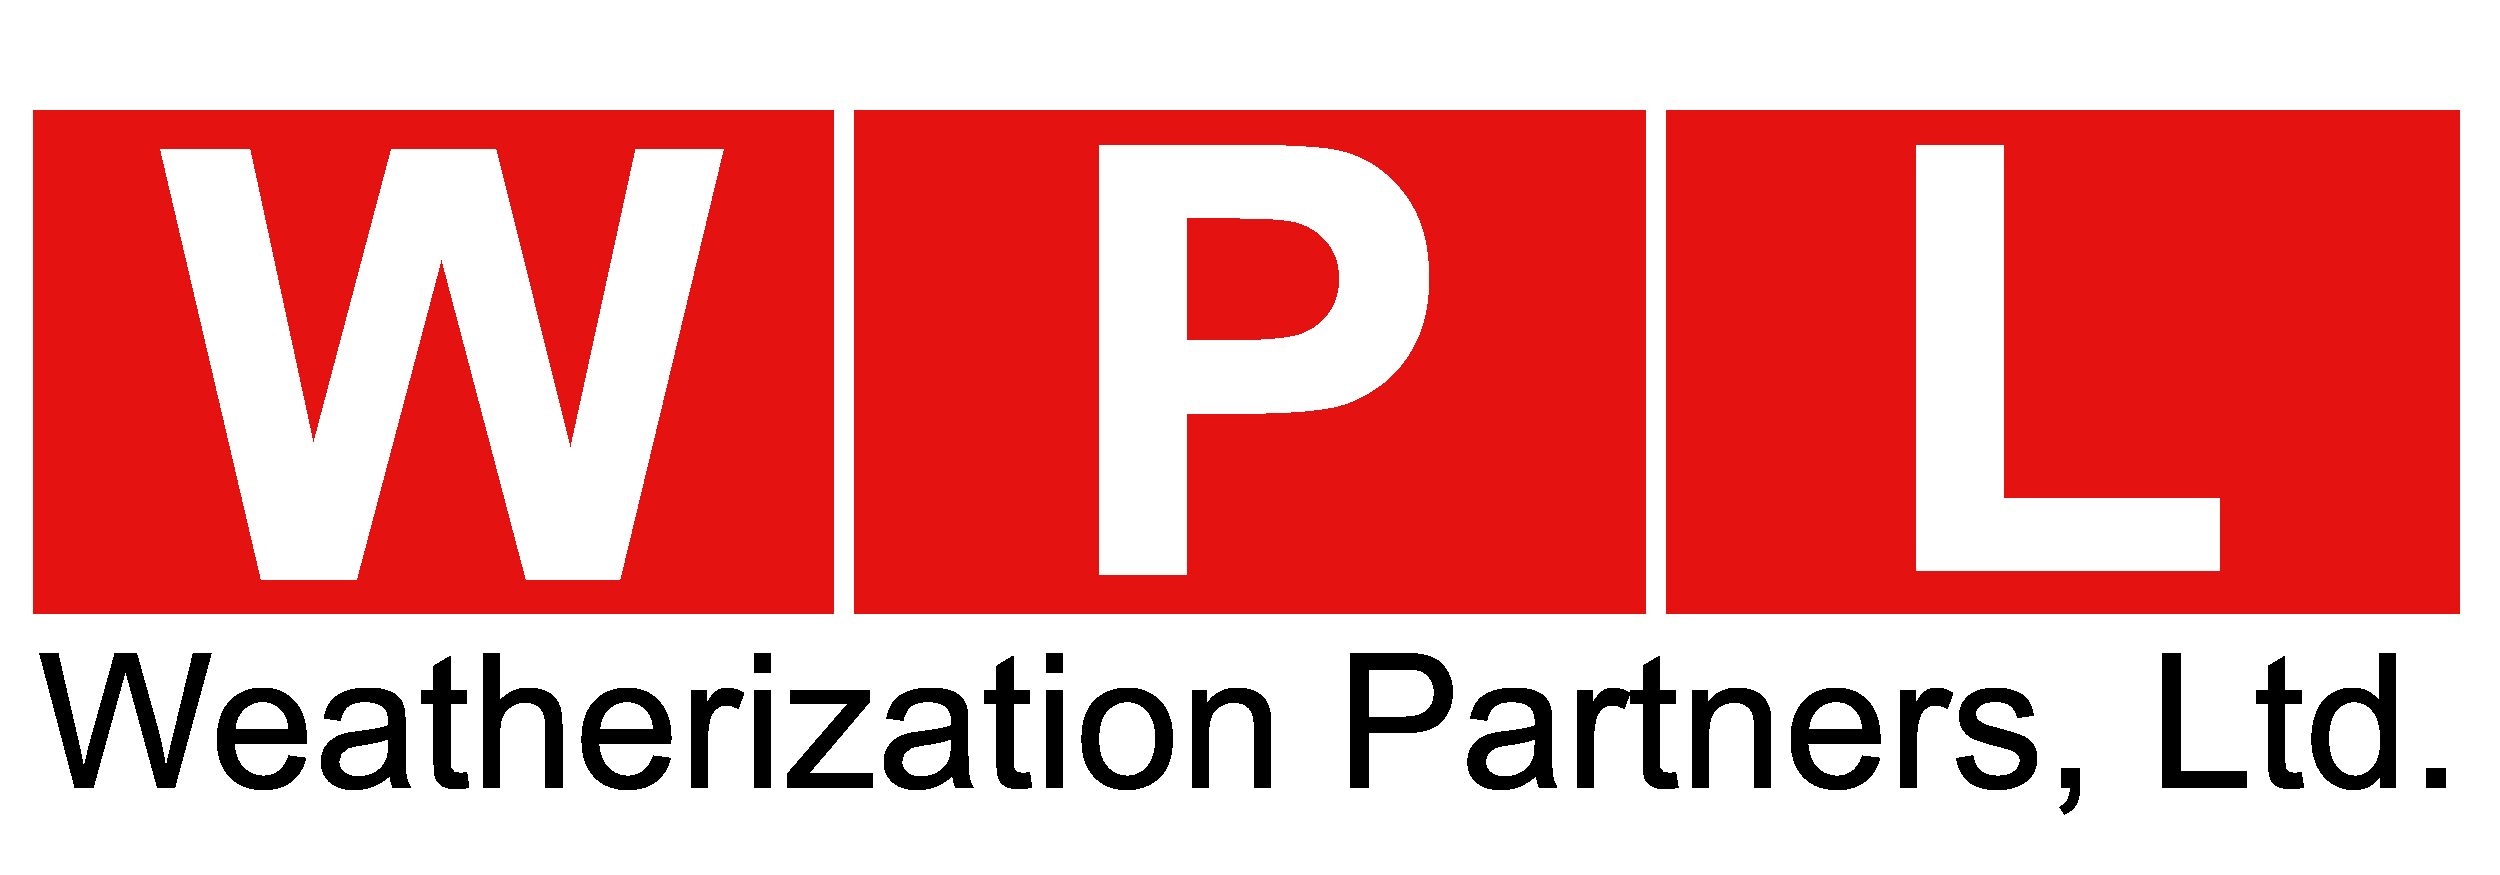 BEC - Weatherization Partners logo